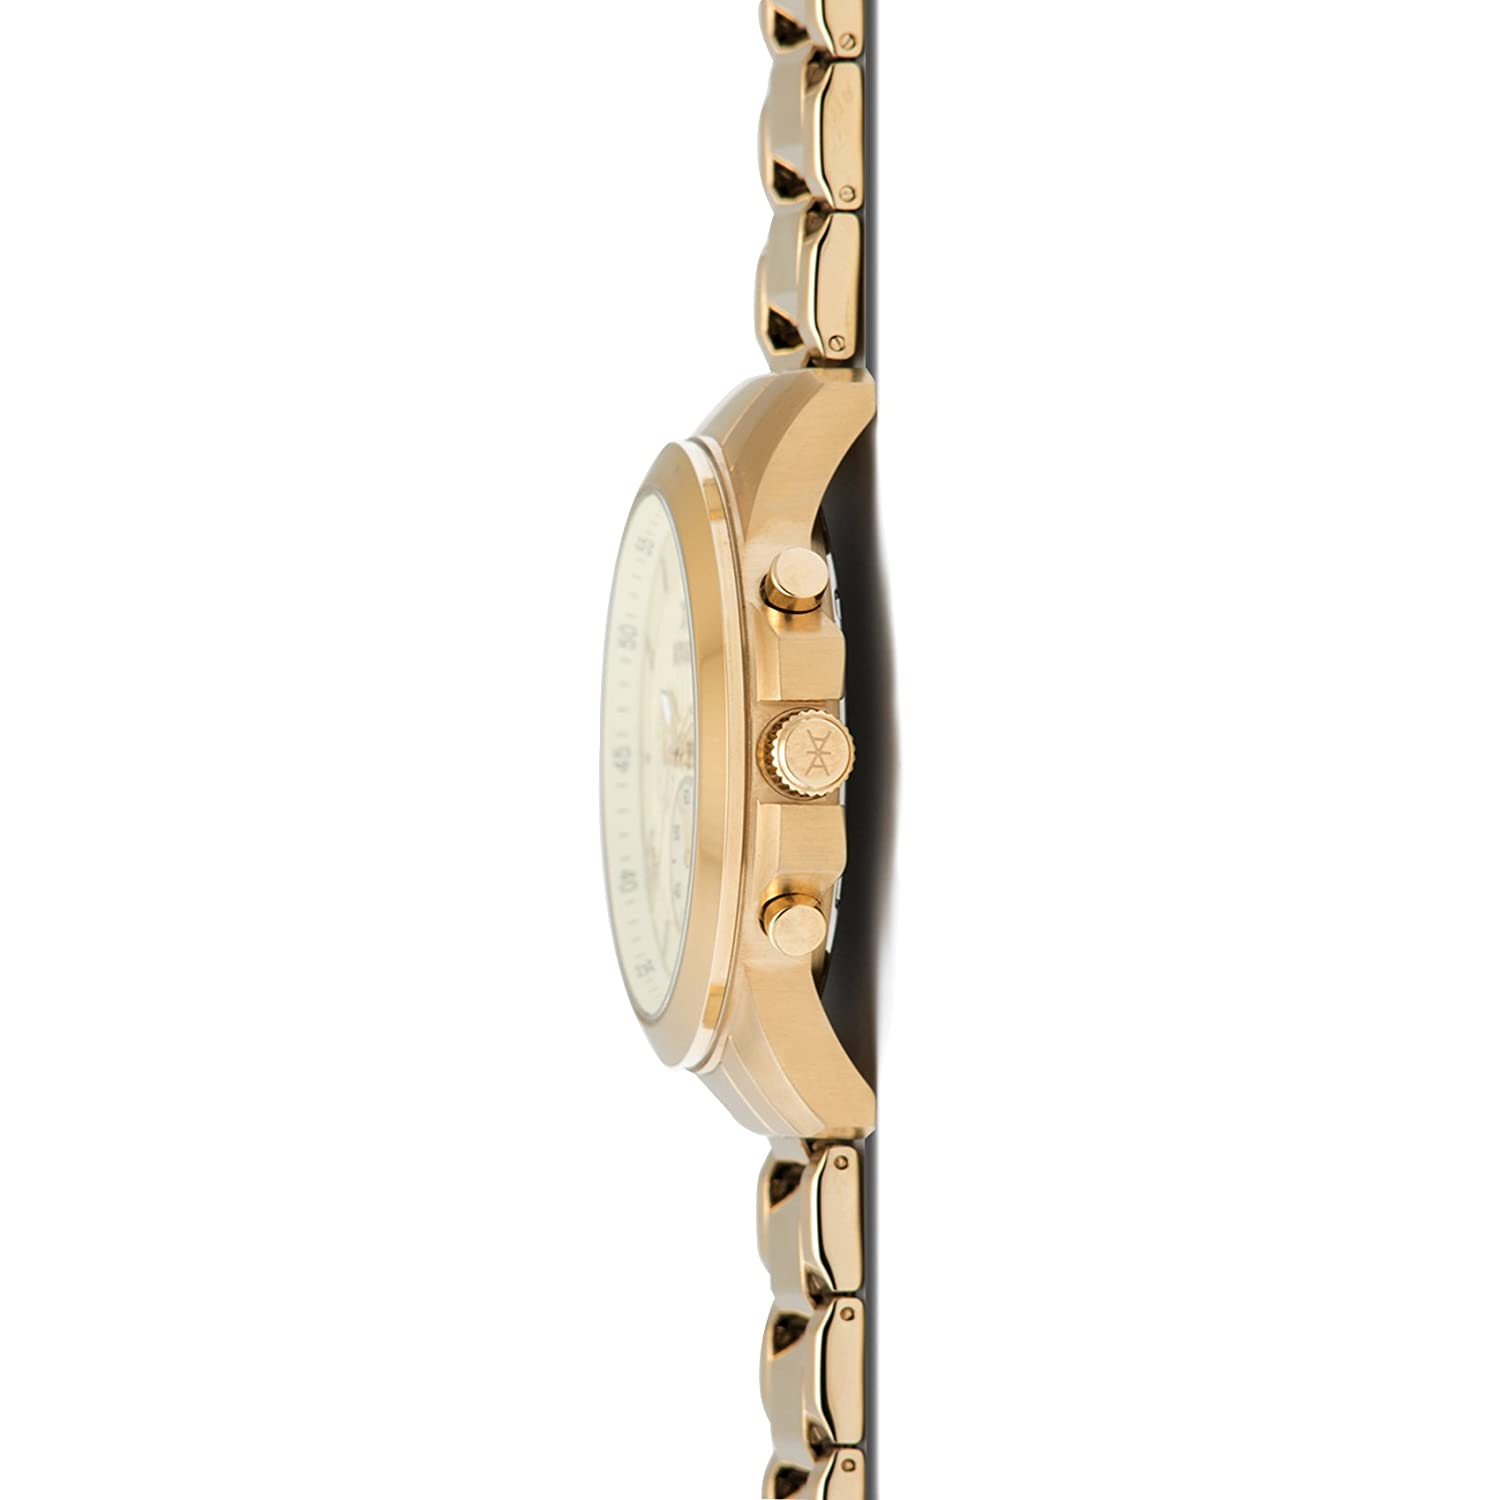 Amazon.com: AIMANT Mens Kent Gold with Gold Stainless Steel Bracelet Watch GKE-100SG-GG: Watches